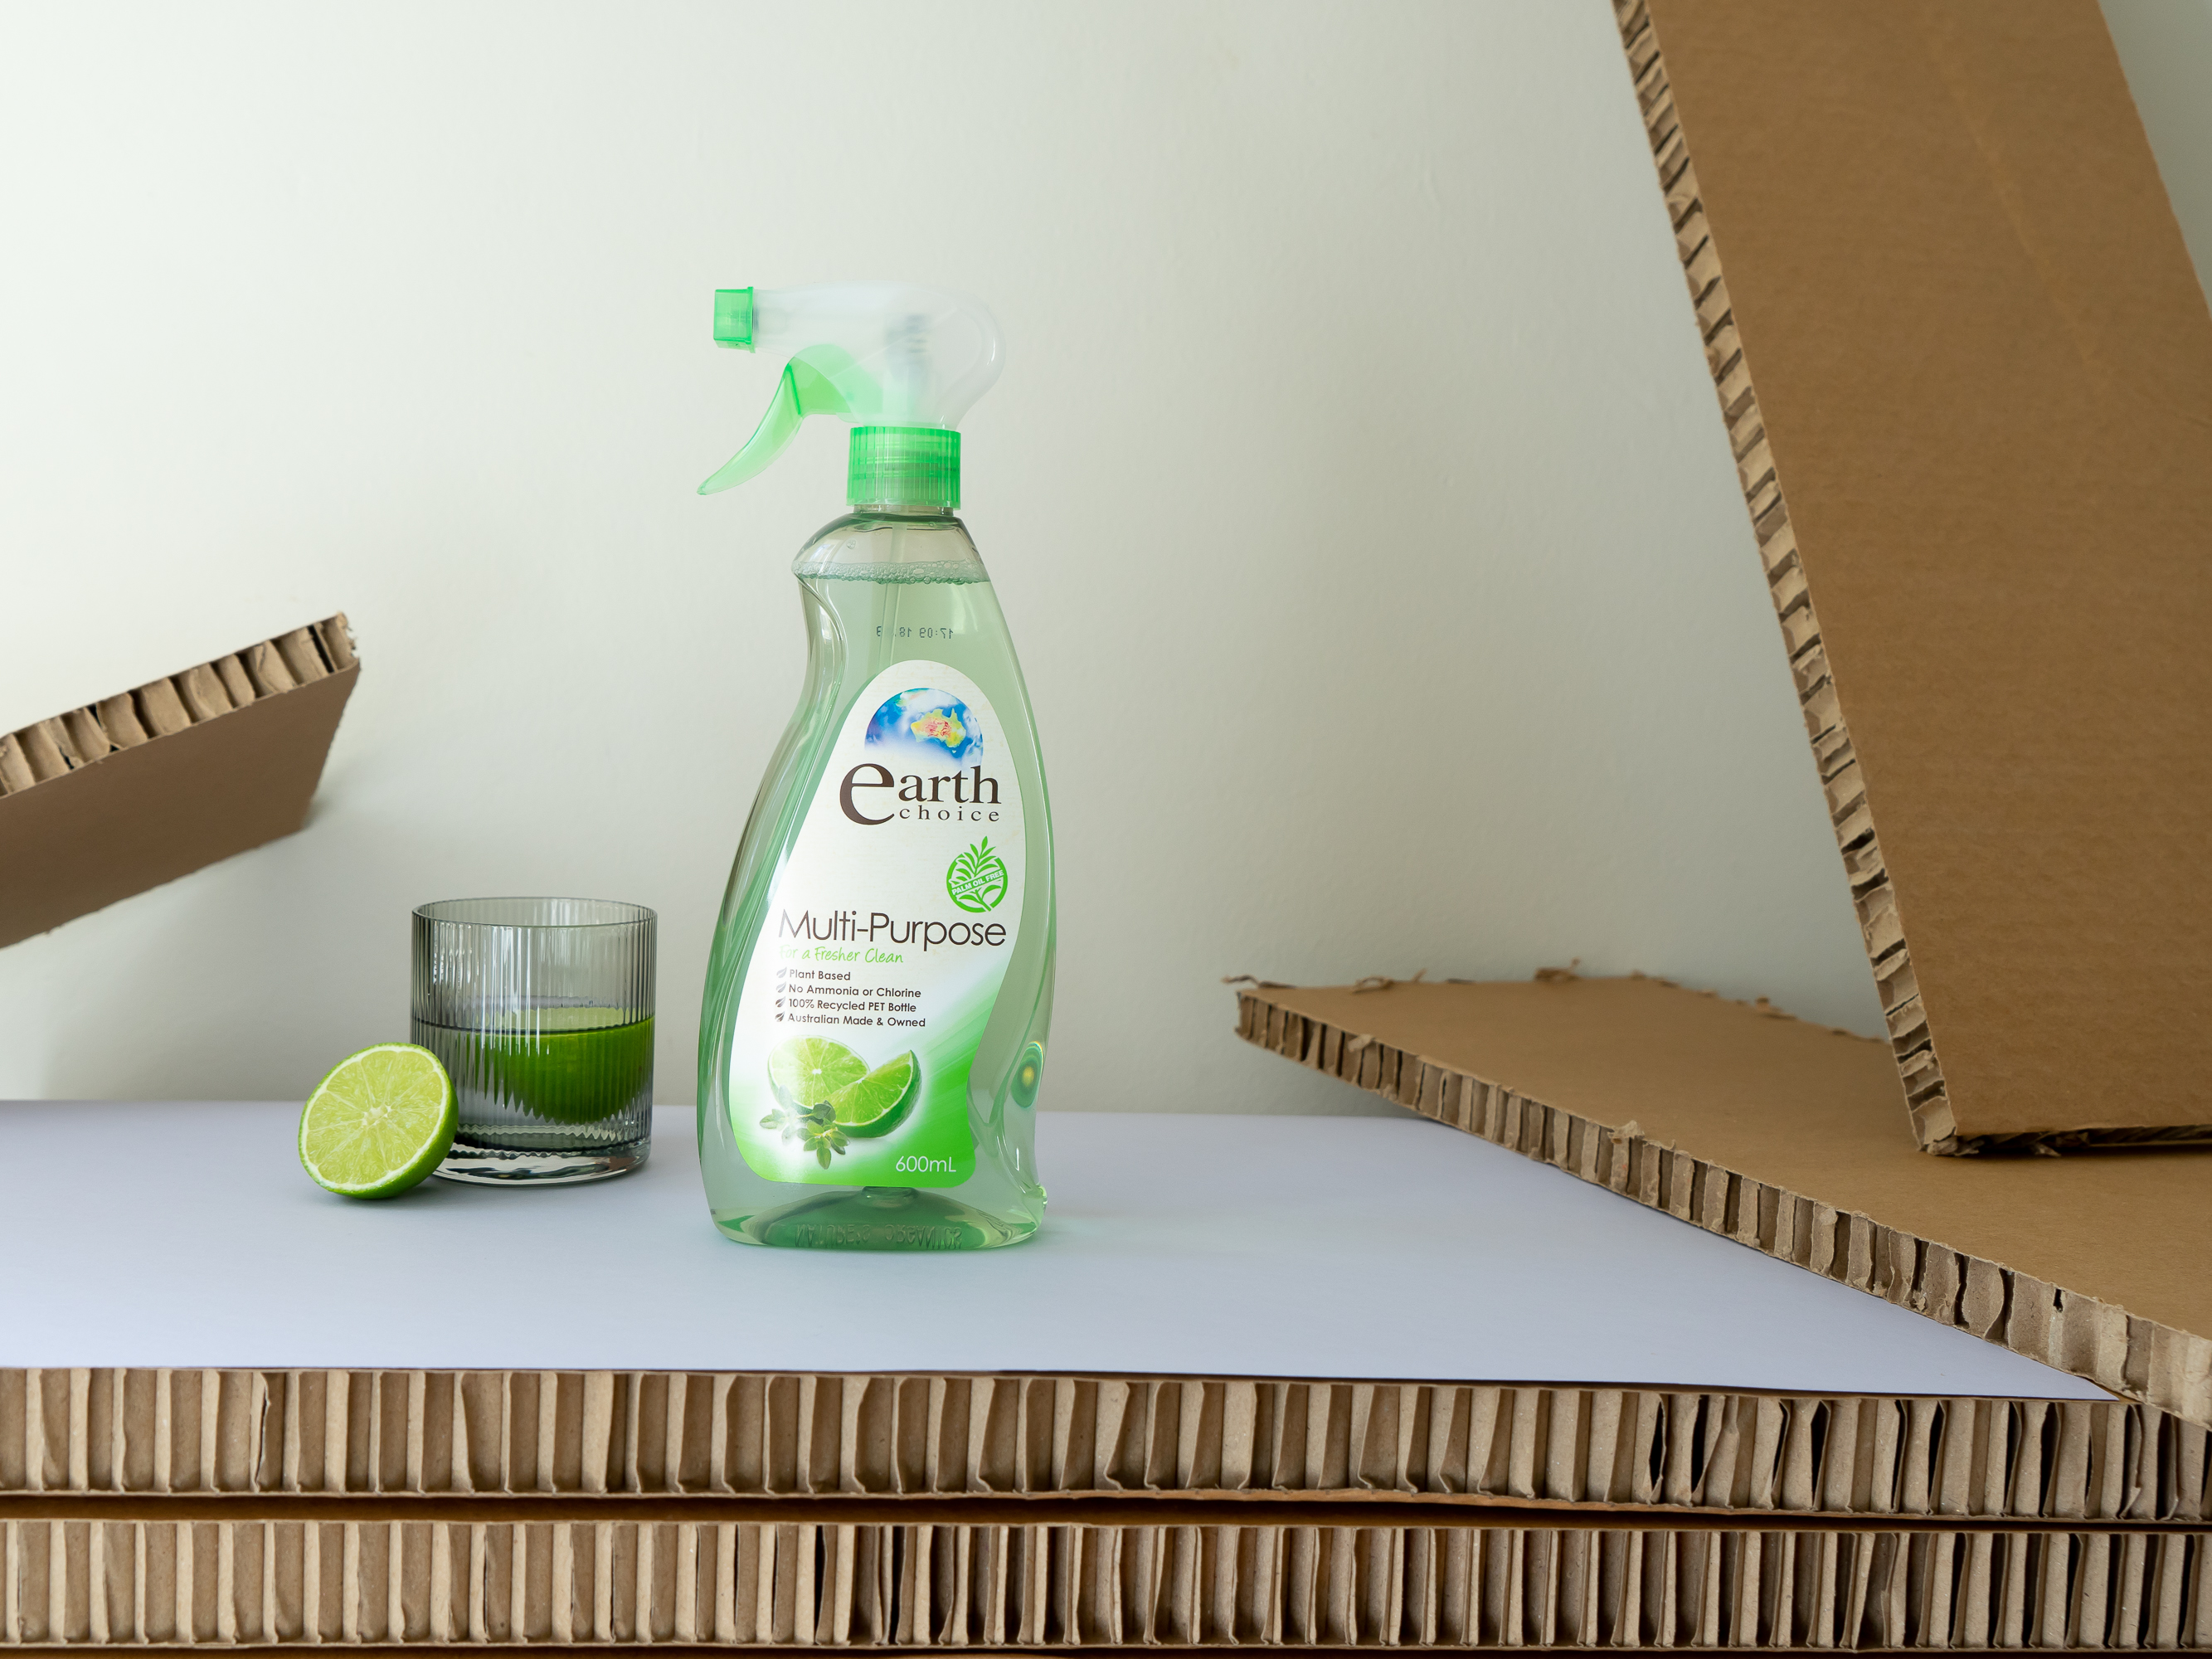 Earth Choice green eco cleaning spray with lime